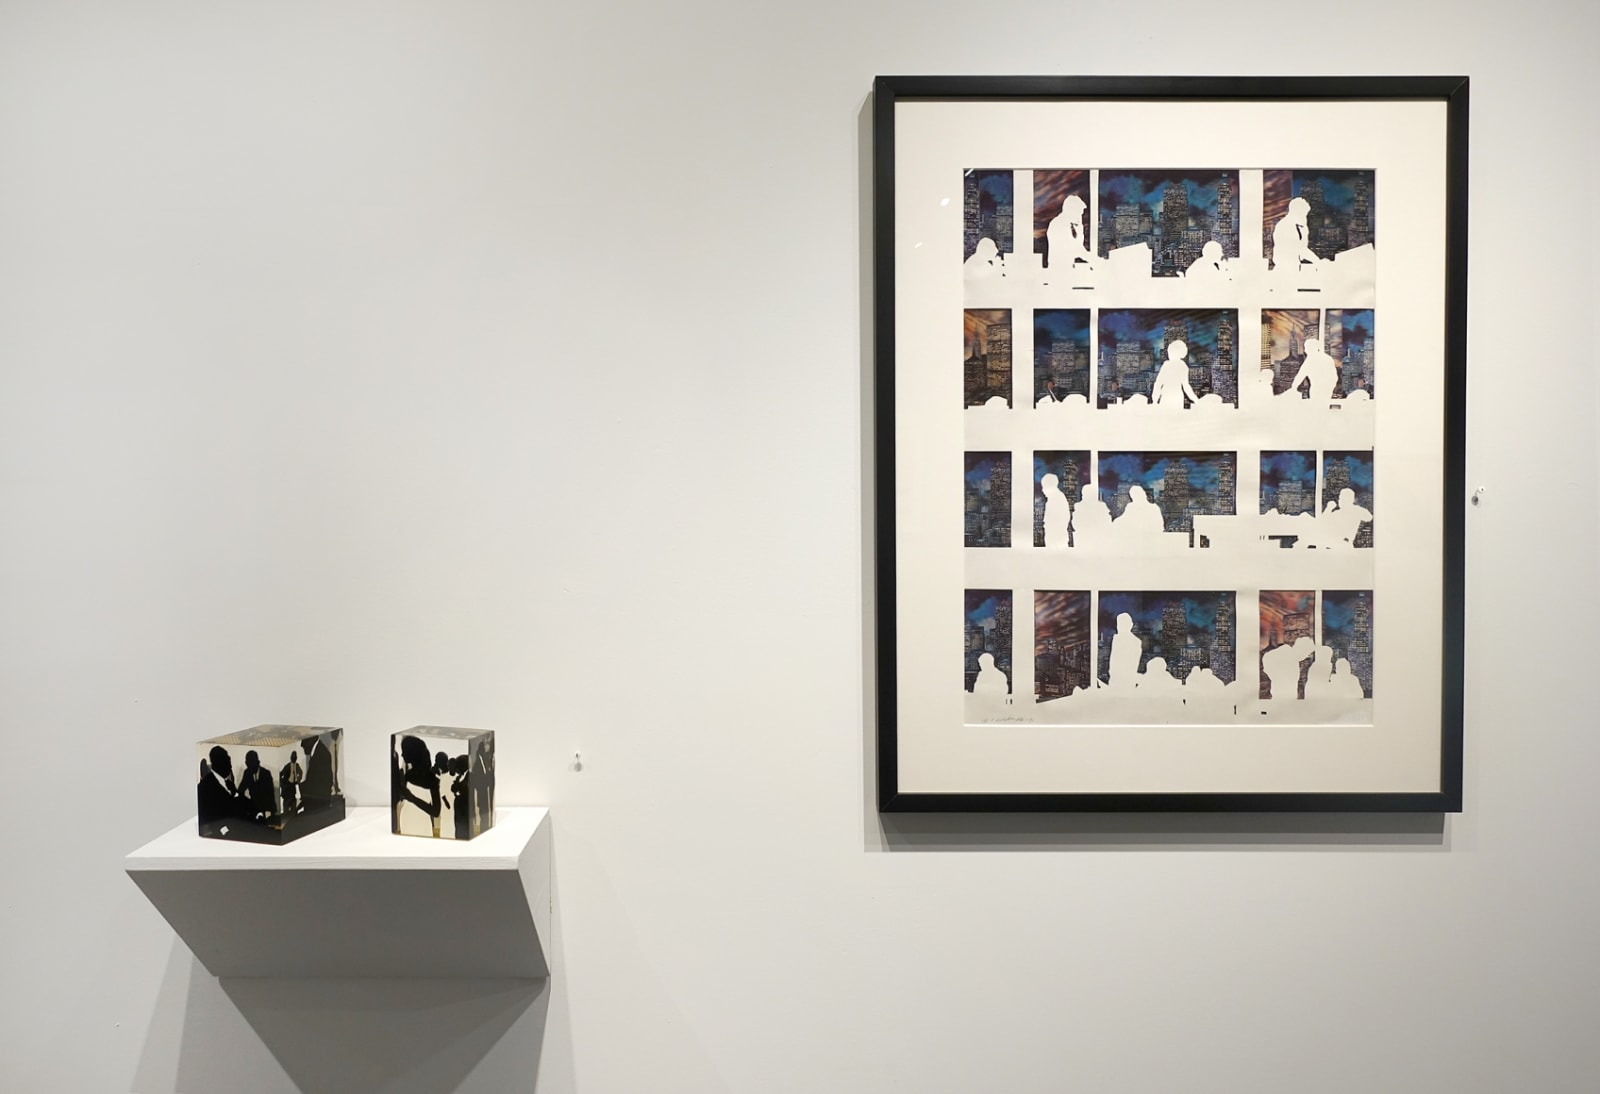 Installation view: Idelle Weber: Postures and Profiles from the 50s and 60s